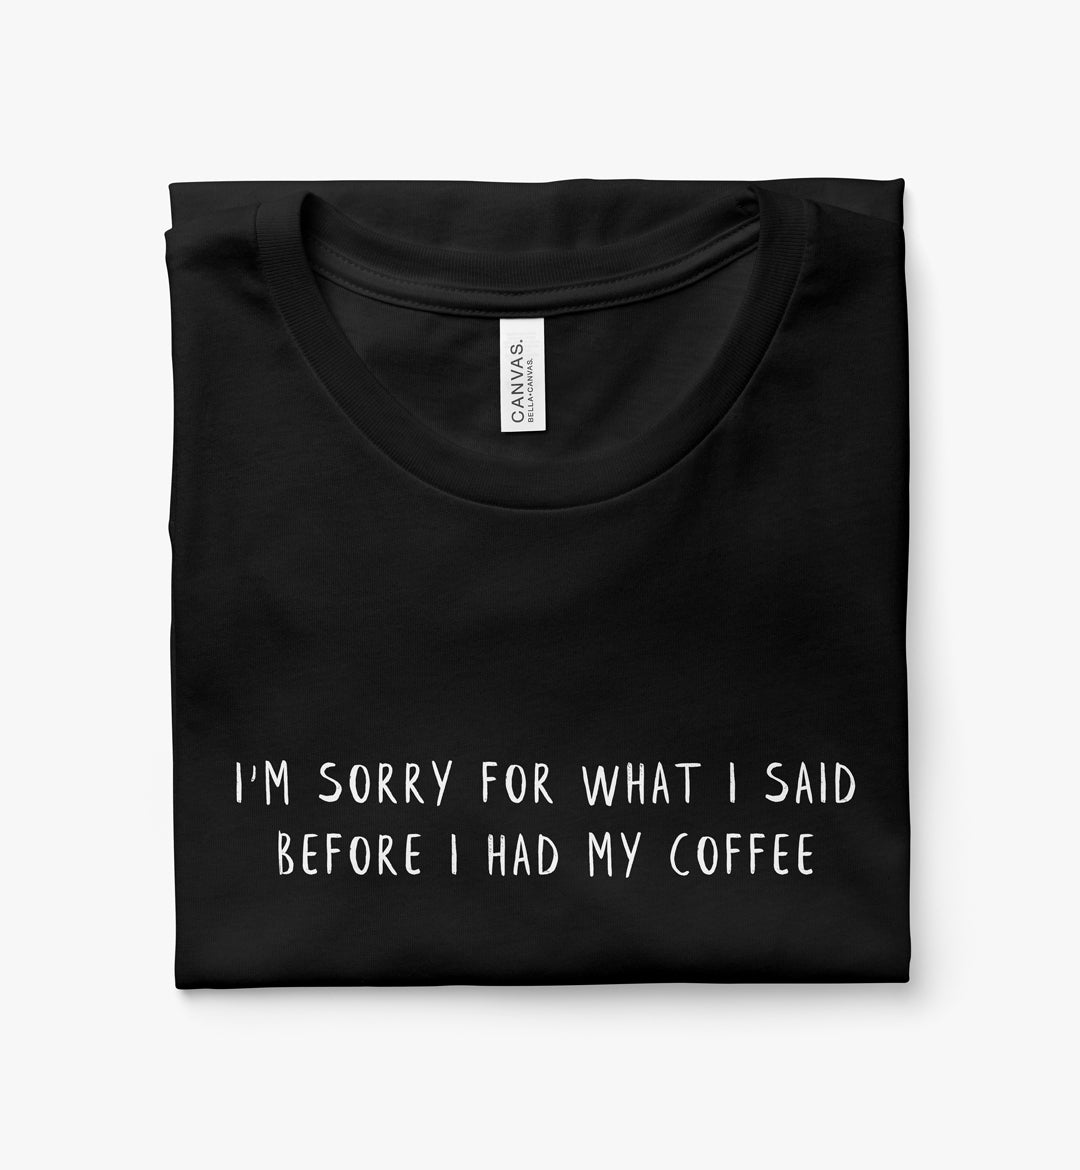 I'm Sorry for What I Said Before I Had My Coffee